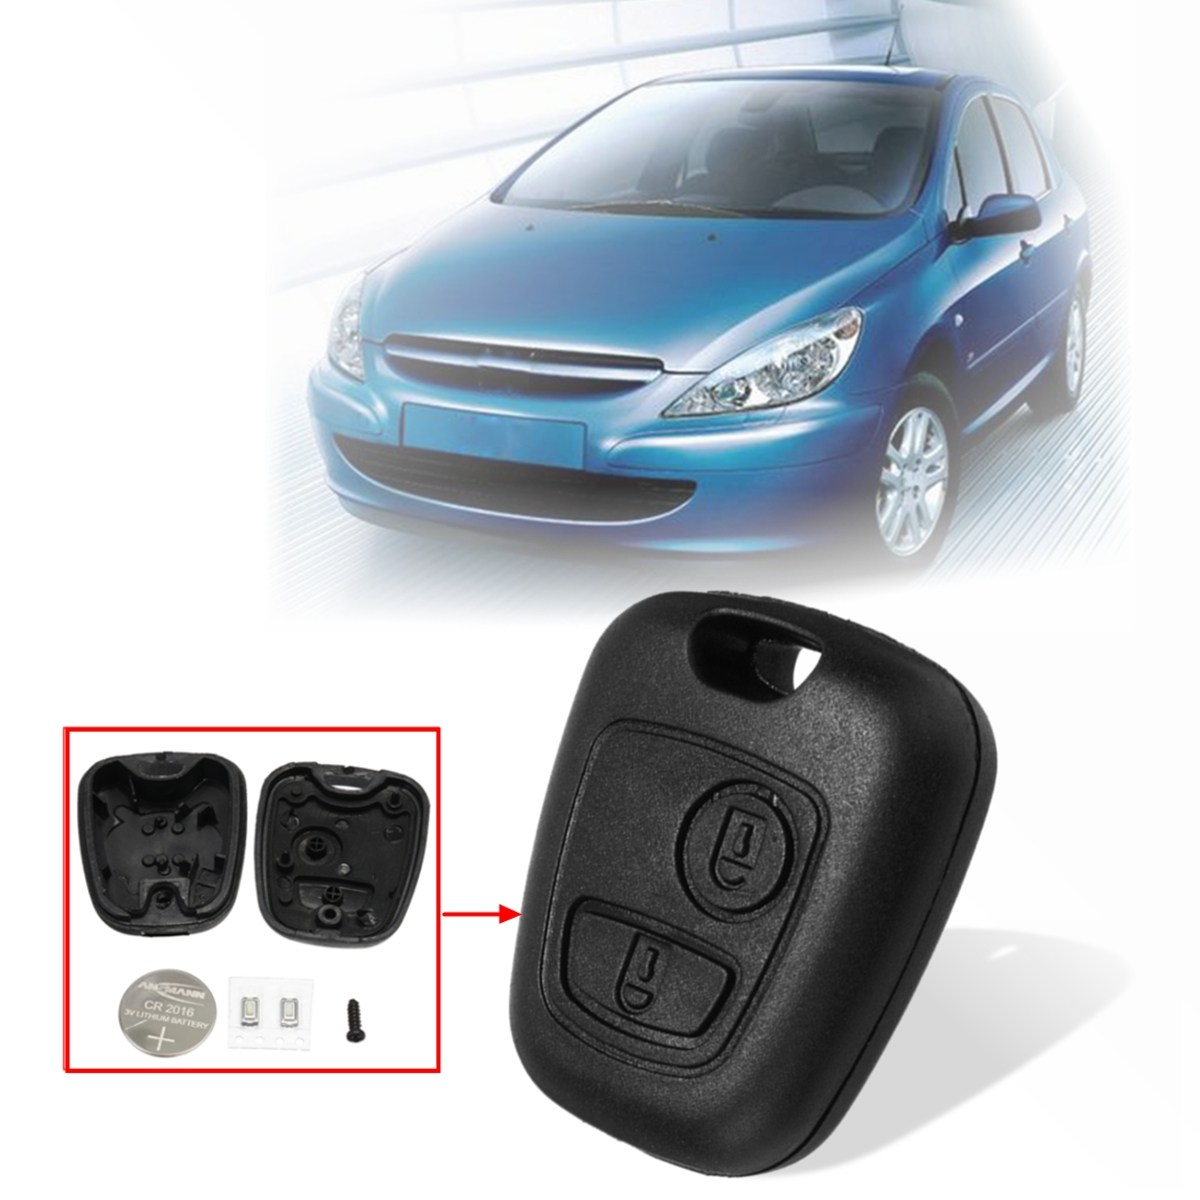 2 buttons car remote key fob case shell with battery. Black Bedroom Furniture Sets. Home Design Ideas